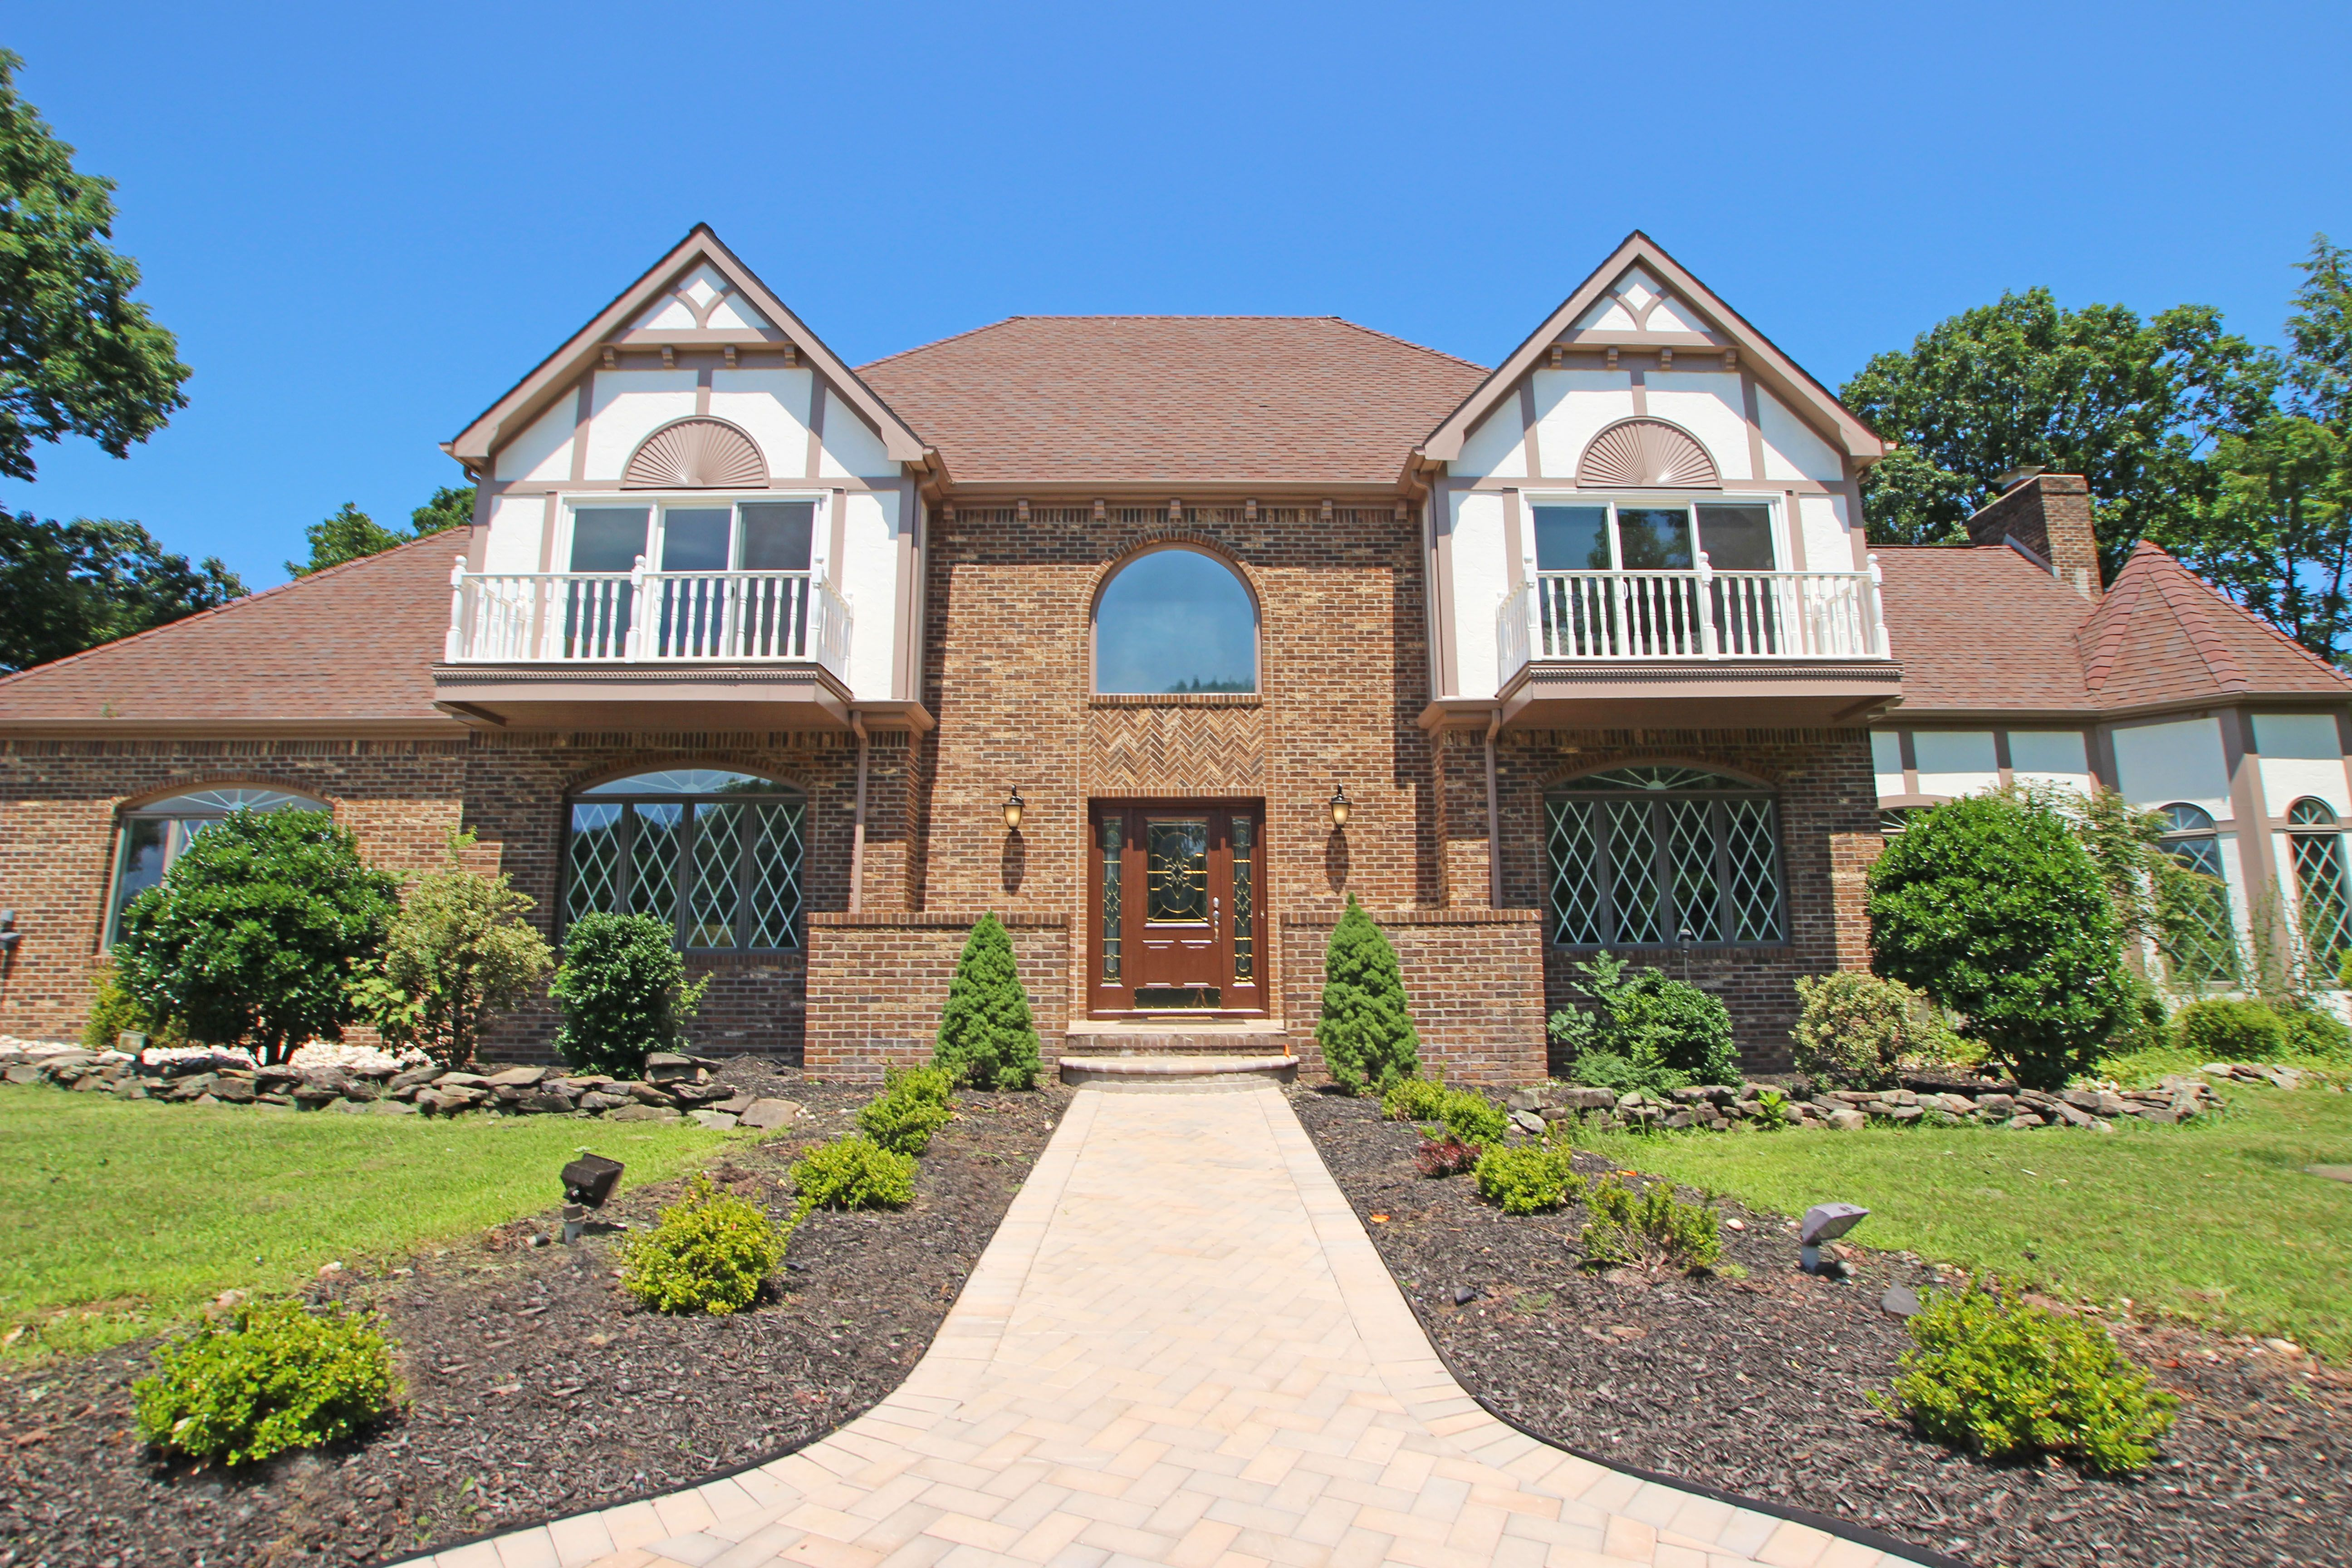 ranch homes for sale in south brunswick nj